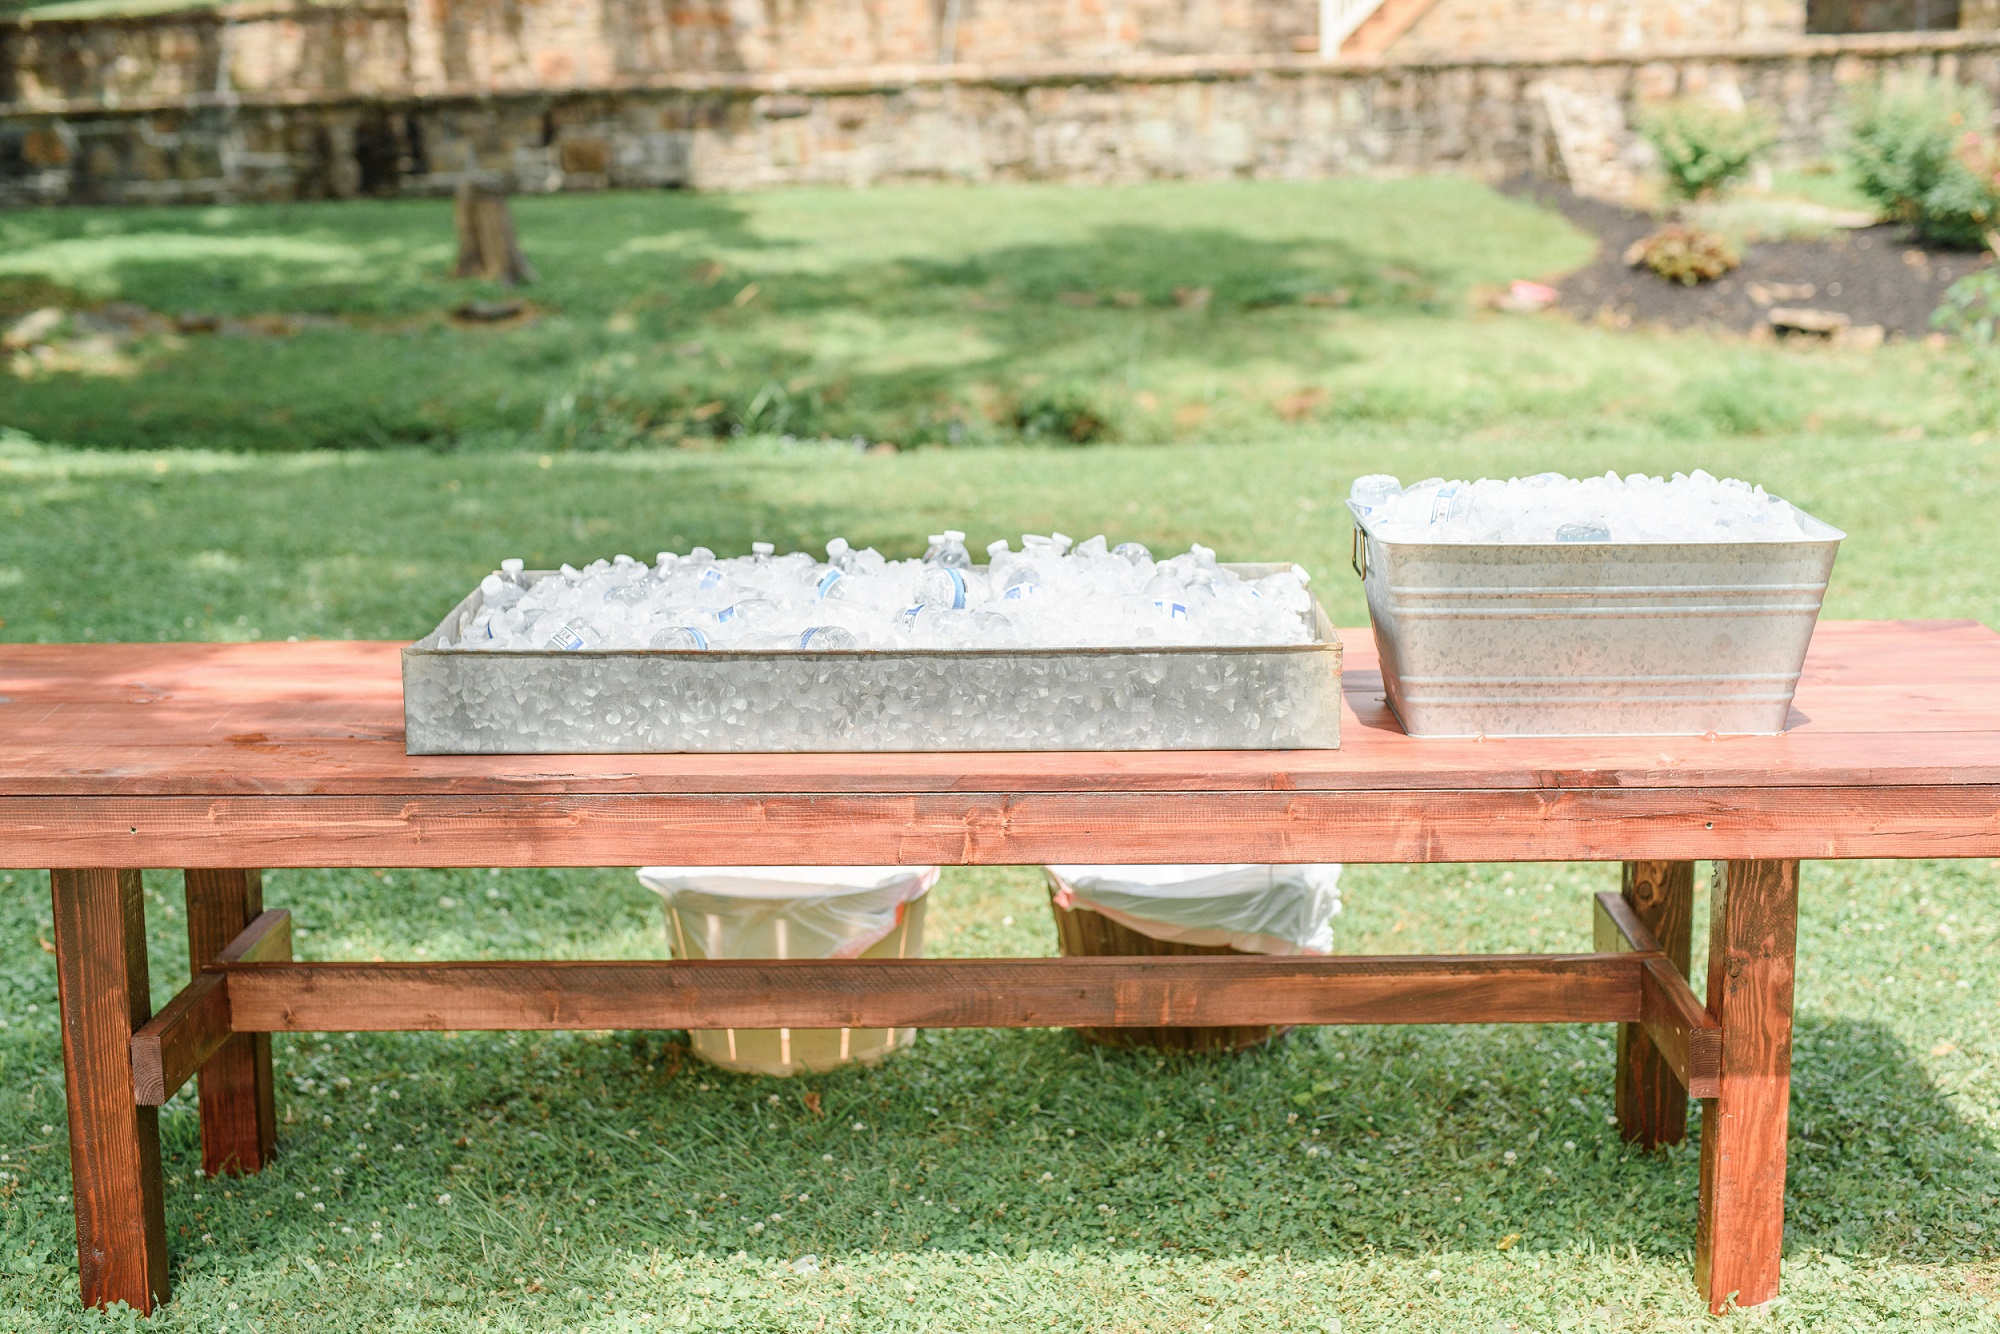 Farmhouse Table Rentals for Weddings Showers or Any Special Occasion